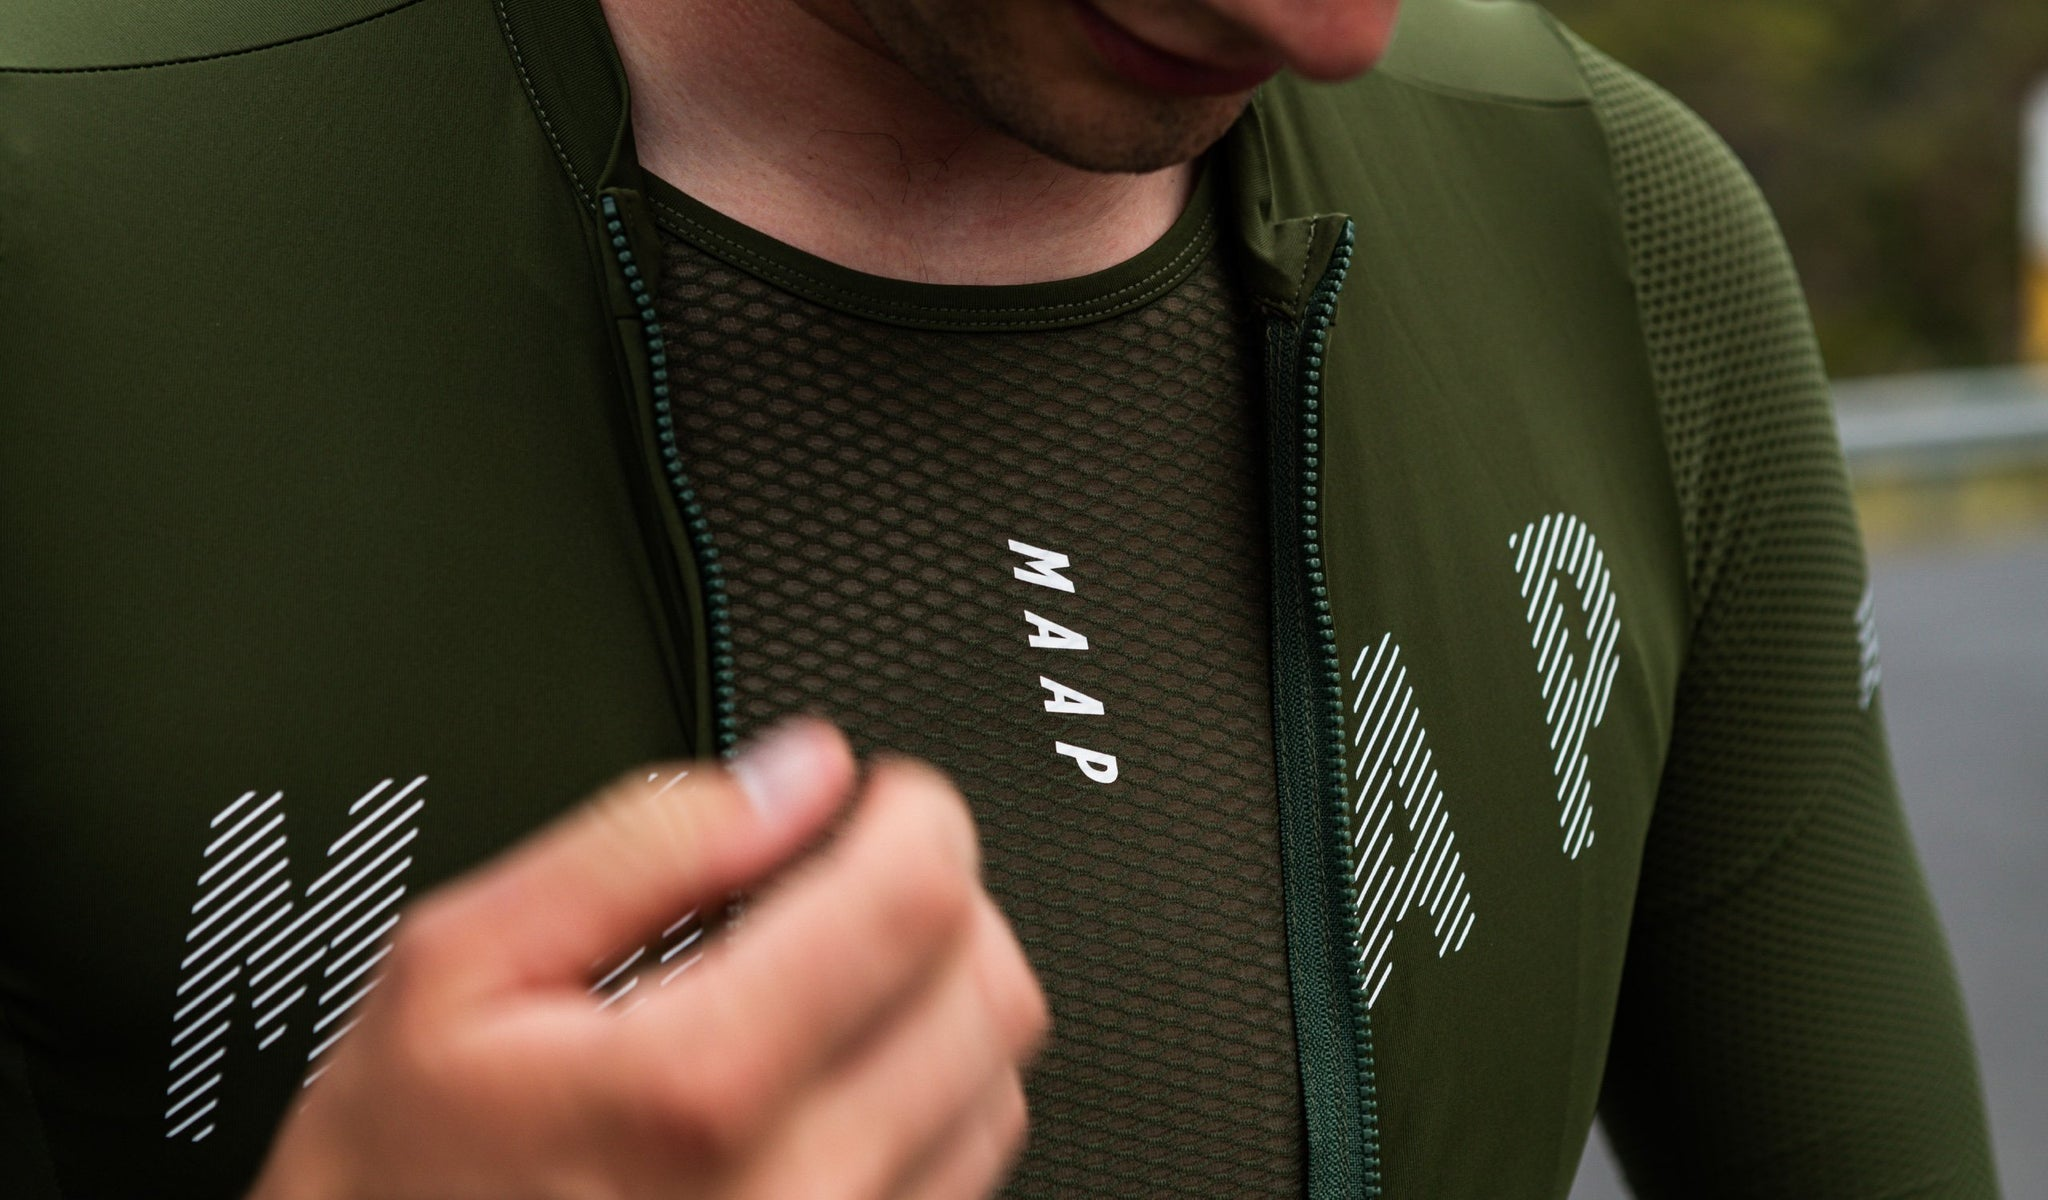 MAAP Team Cycling Base Layer in Military Green for riding in warm weather conditions.